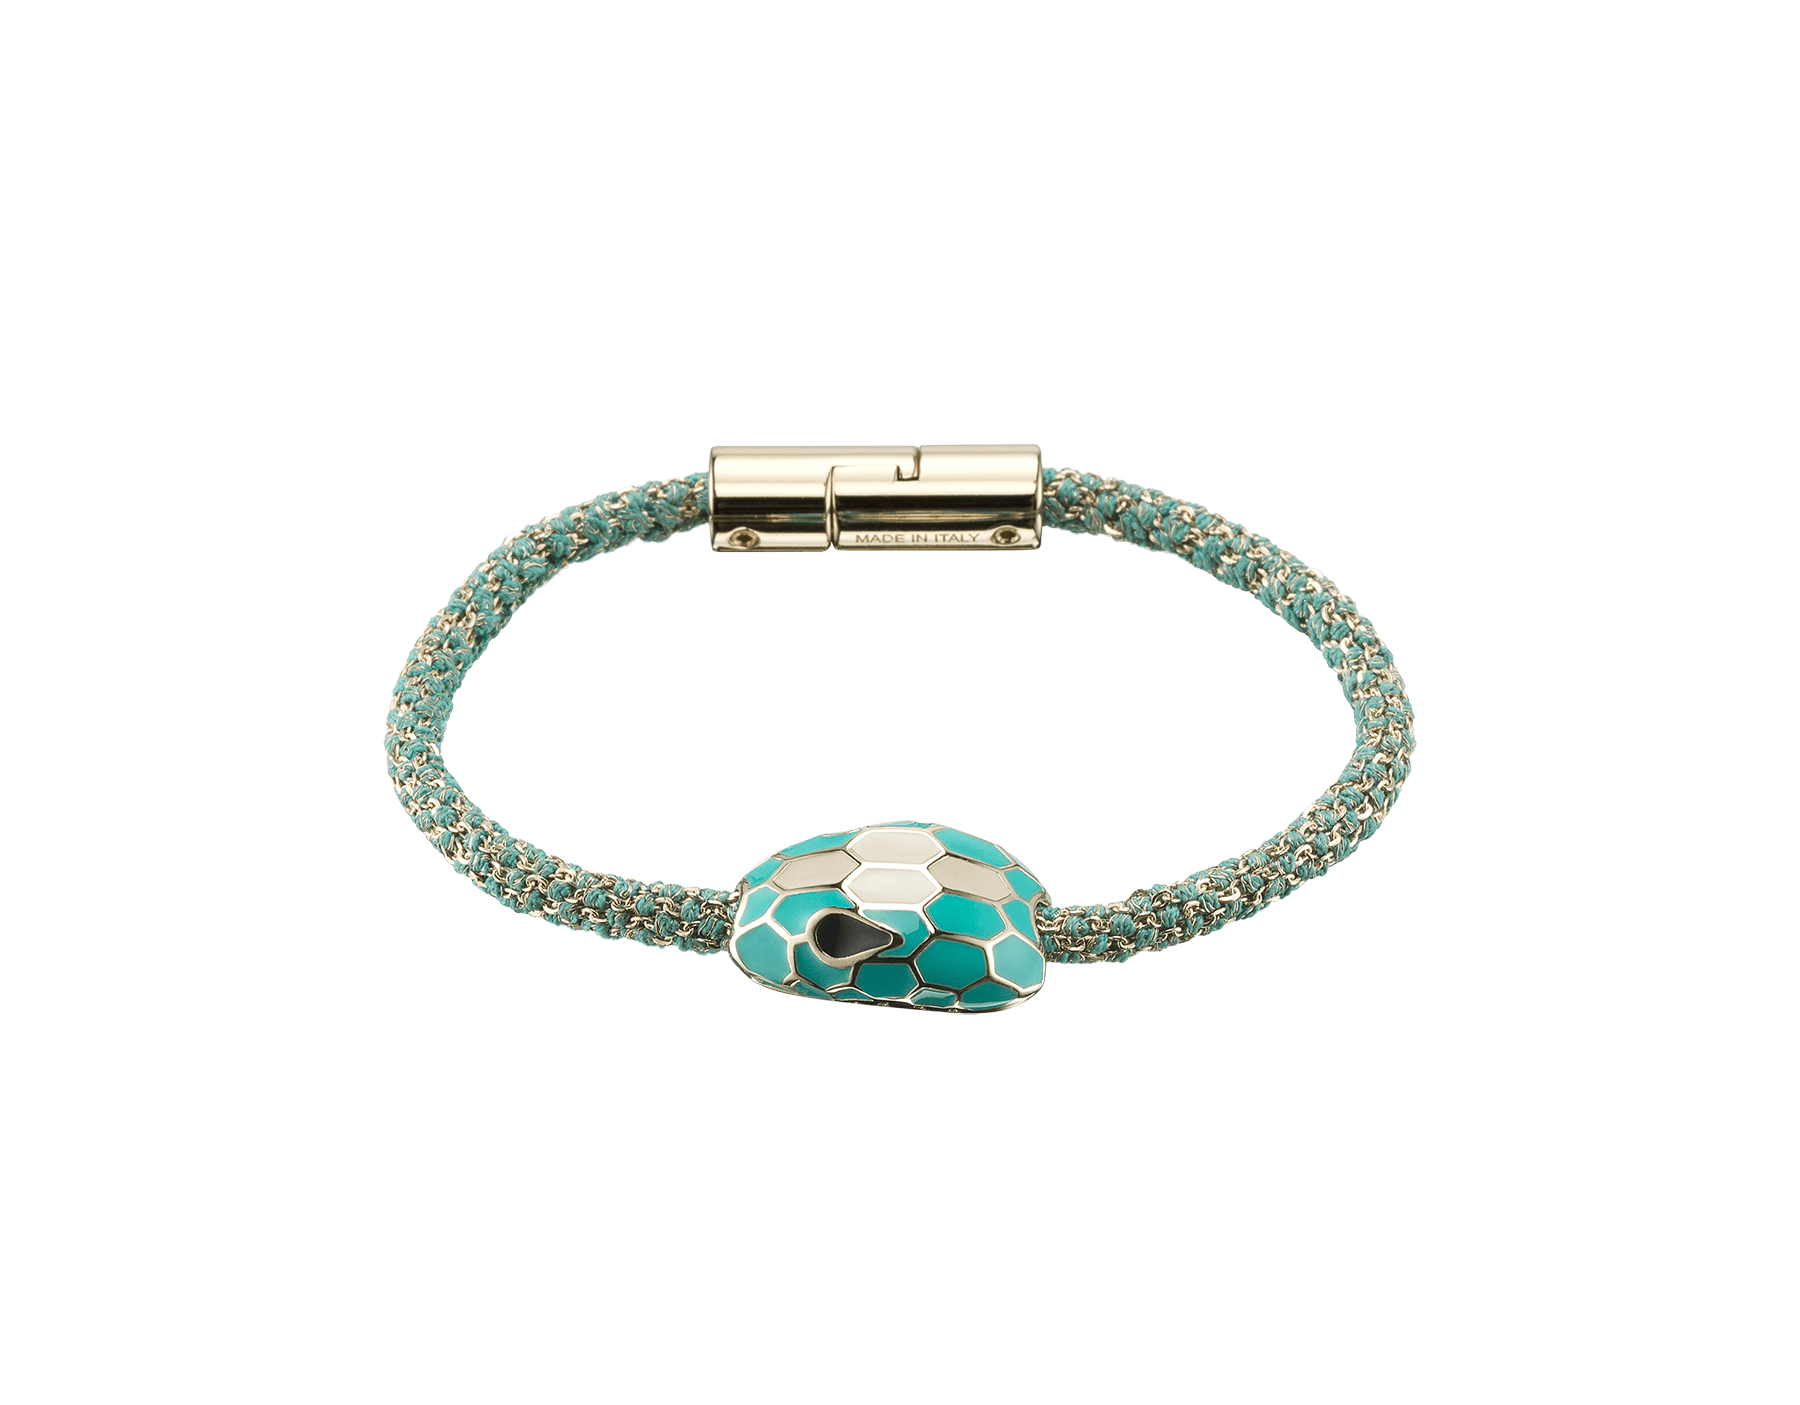 Serpenti Forever bracelet in arctic jade metallic woven silk with an iconic snakehead décor in arctic jade and white enamel. 289447 image 1